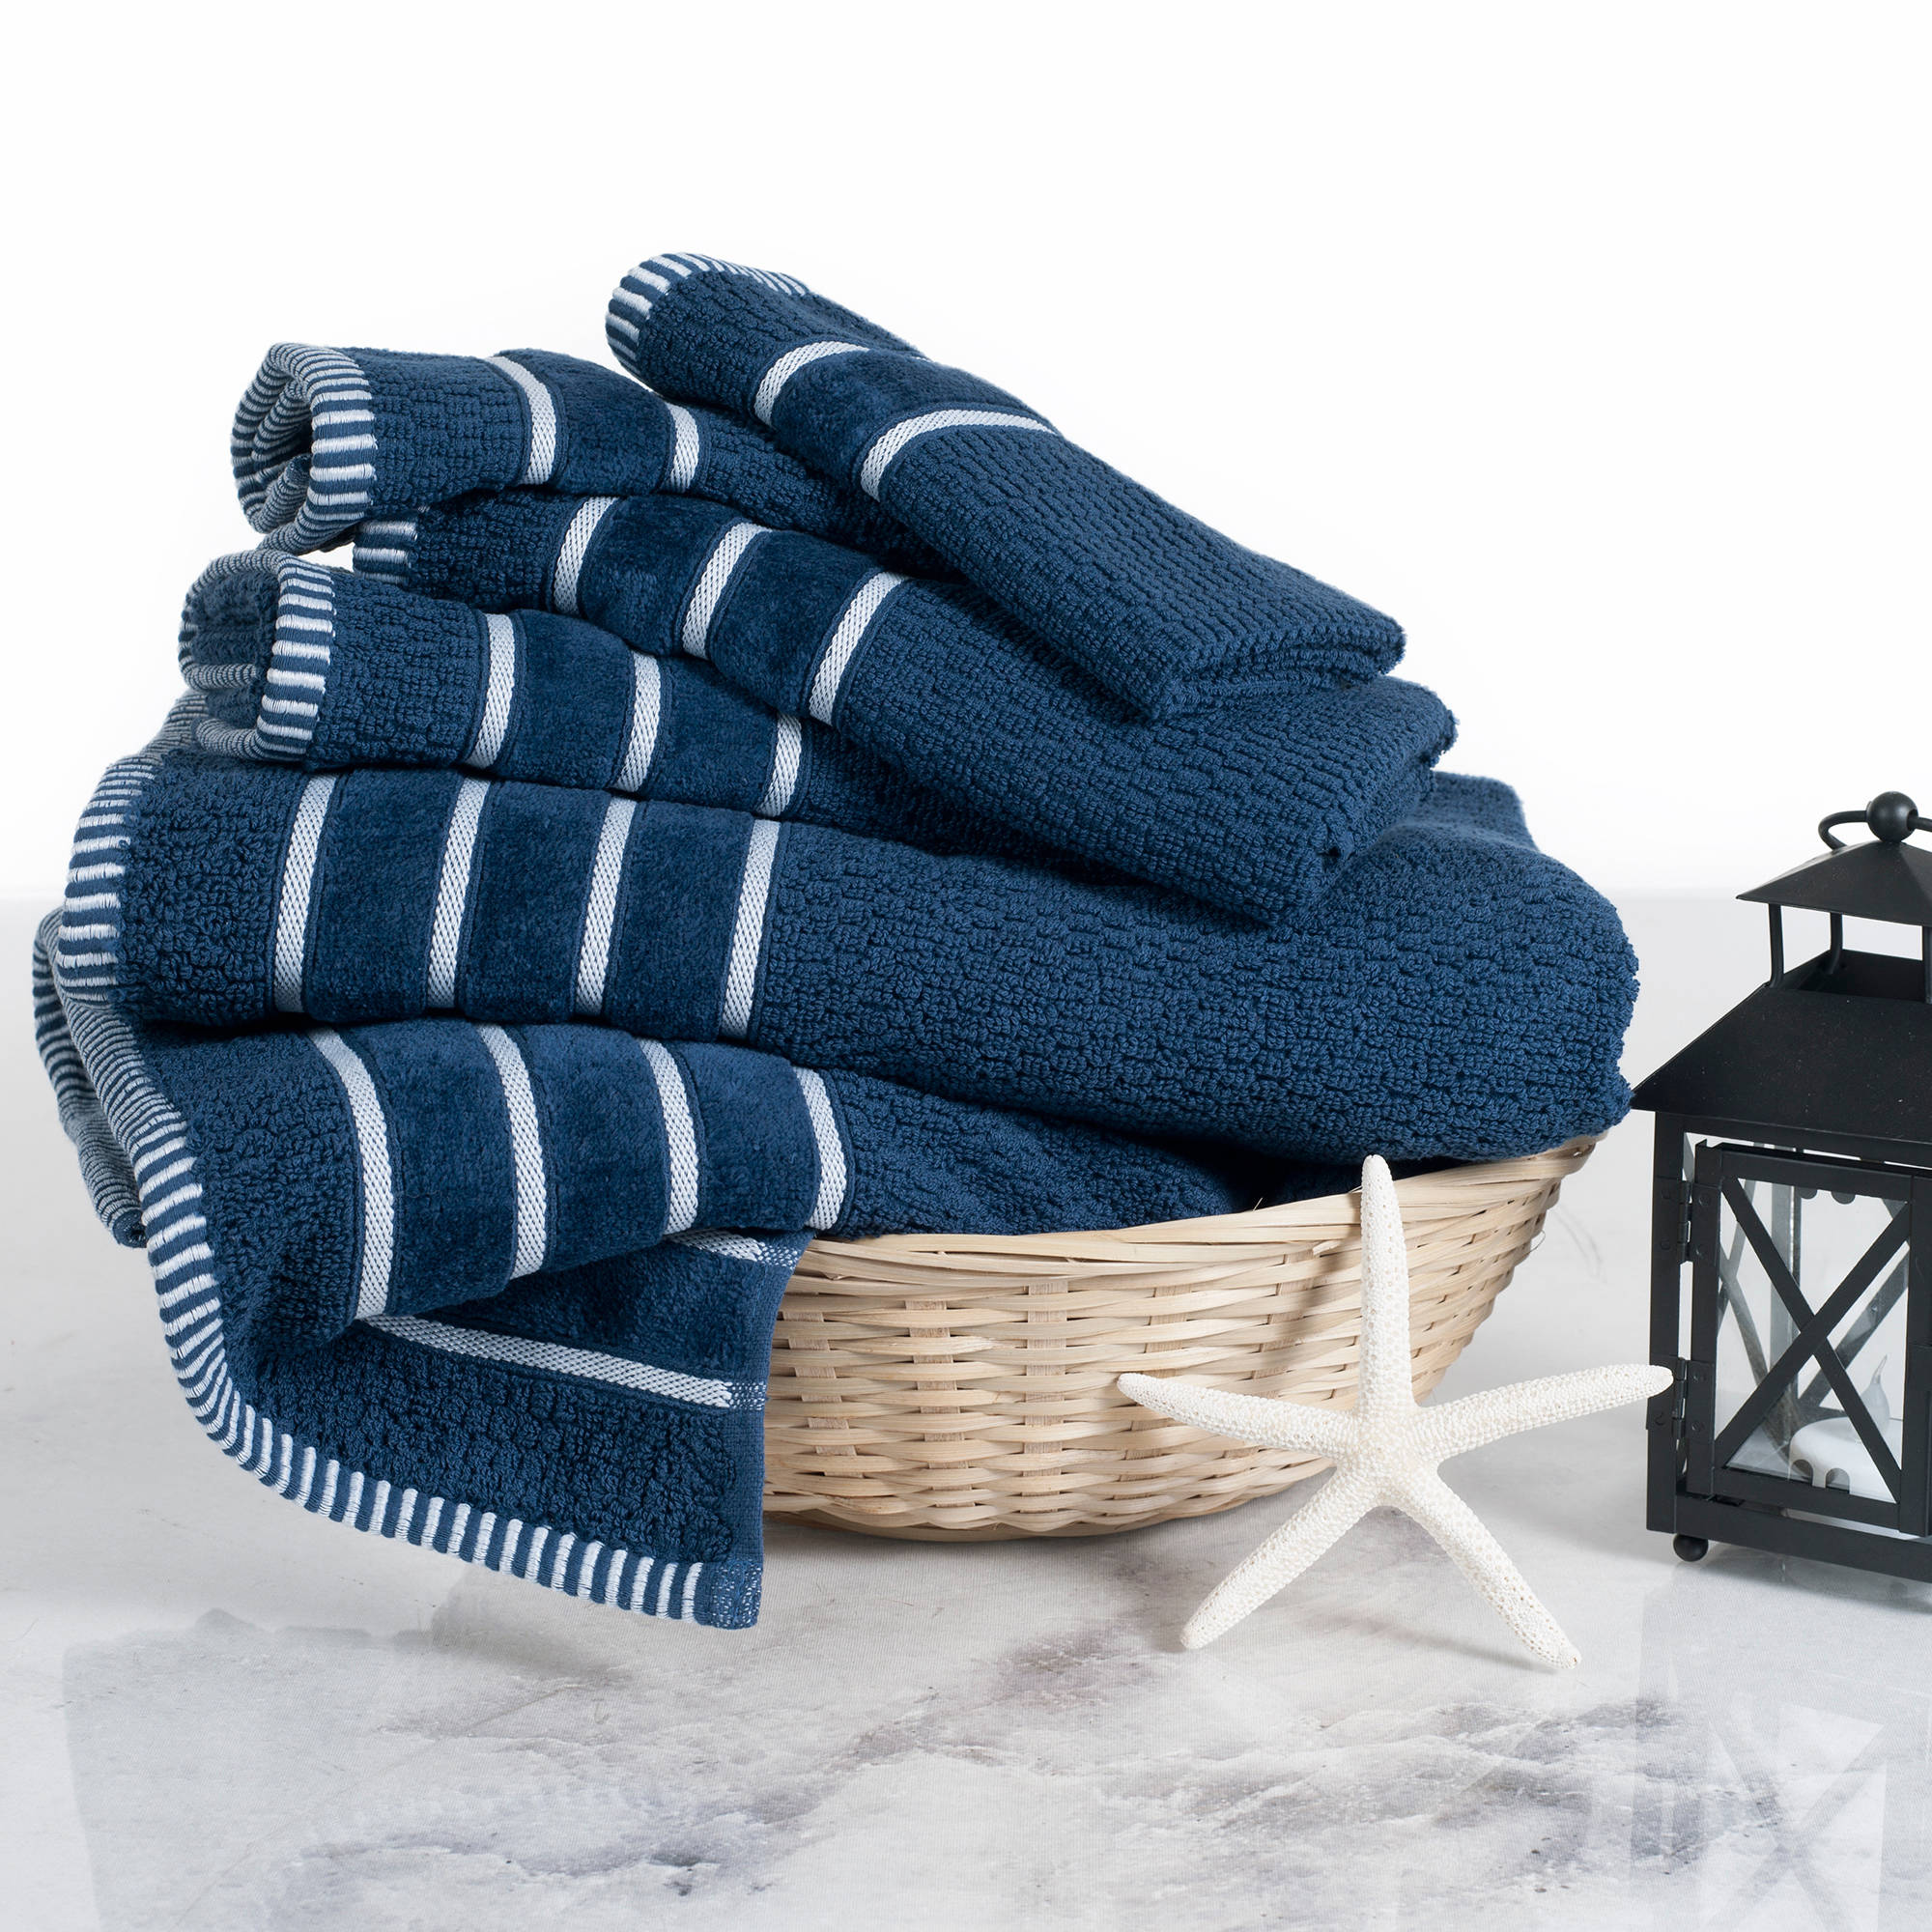 Somerset Home 100 Percent Egyptian Cotton Rice Weave 6-Piece Bath Towel Set